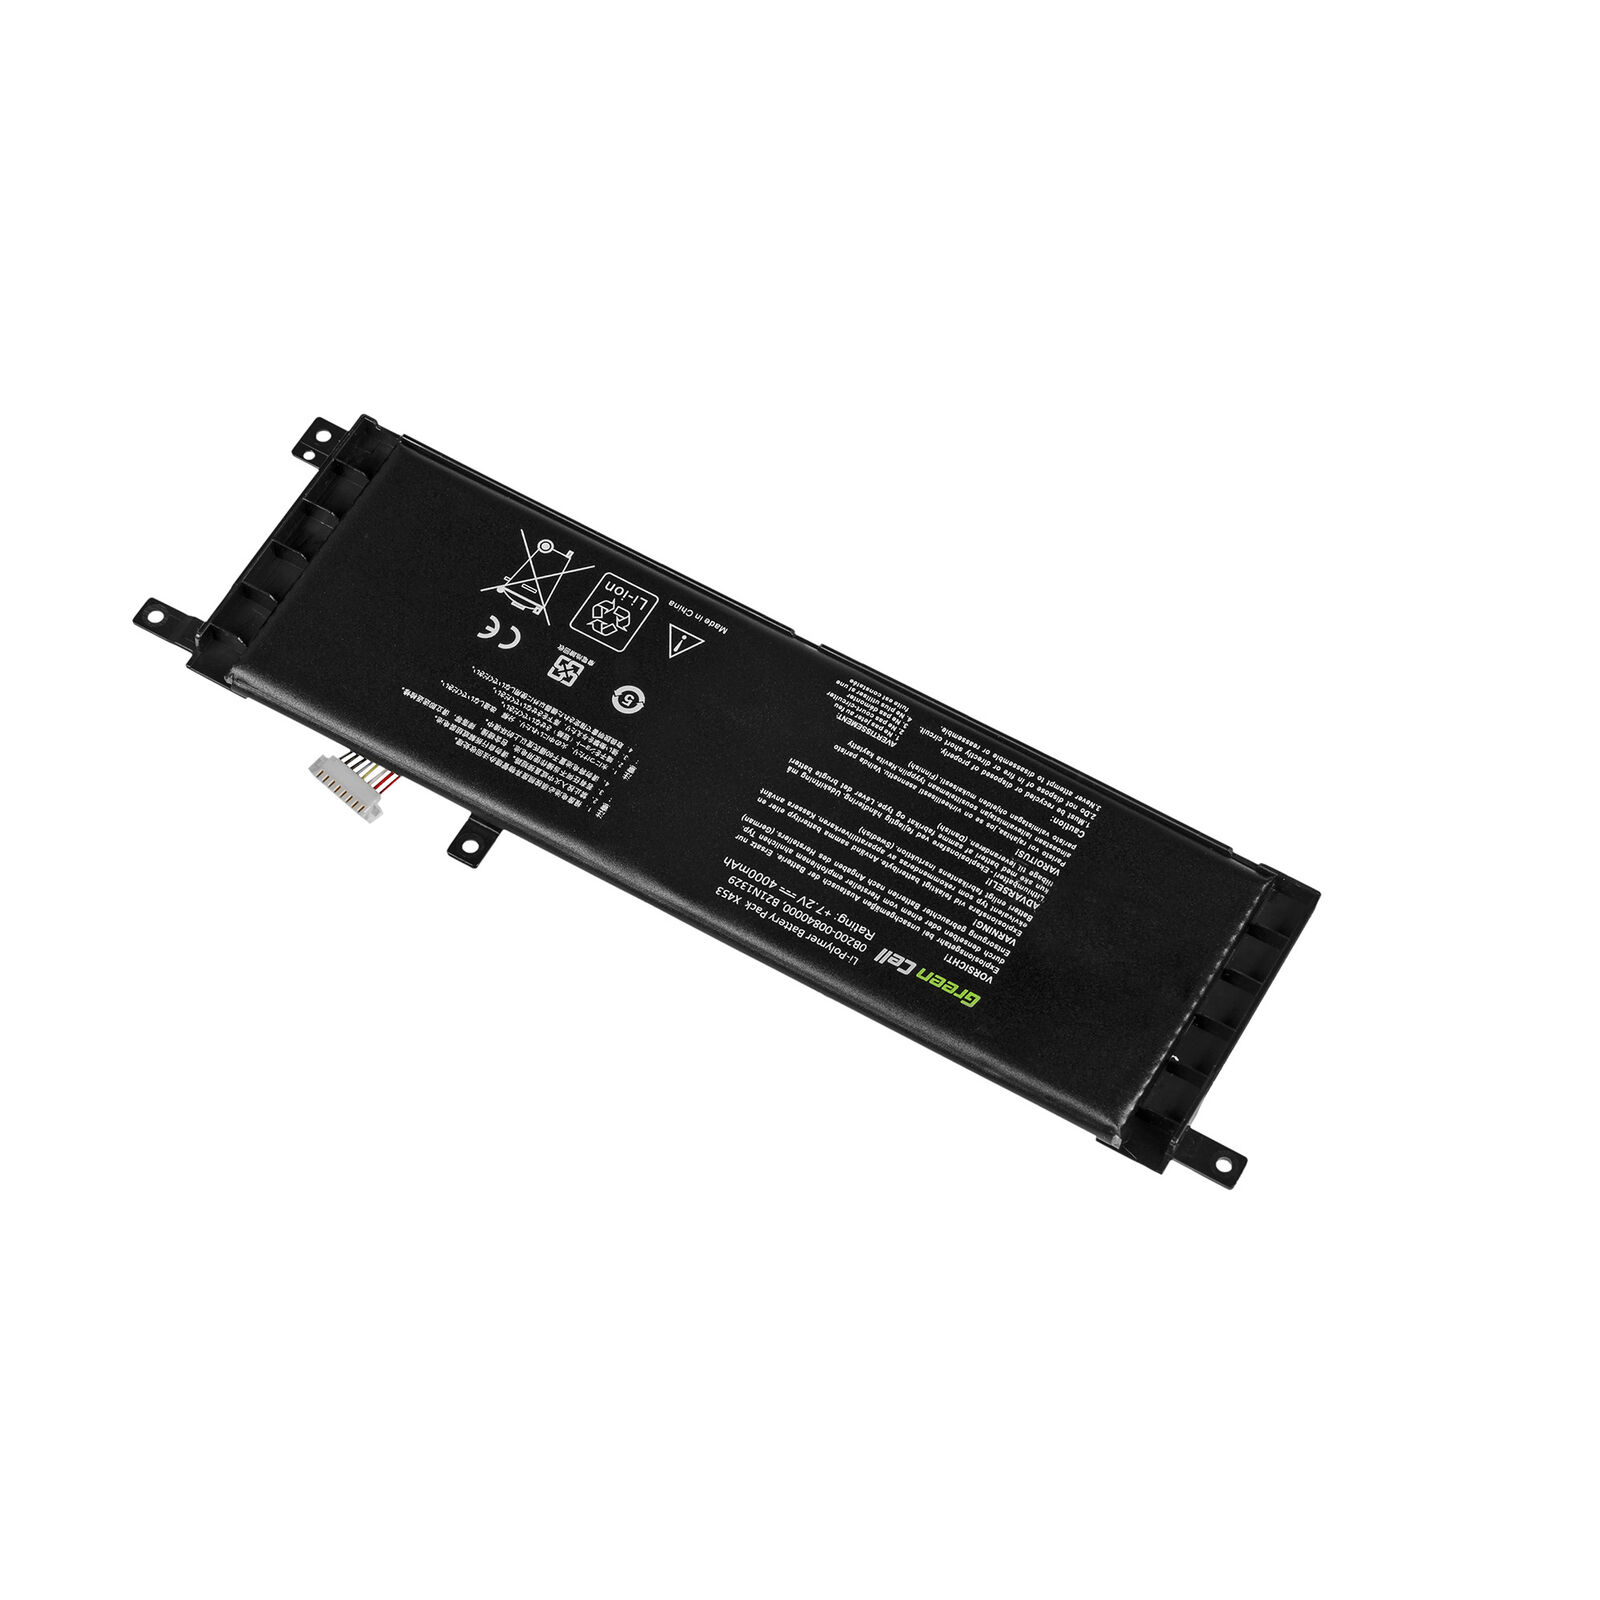 0B200-00840000 B21N1329 B21NI329 B2IN1329 Asus Laptop 4000mAh compatible battery